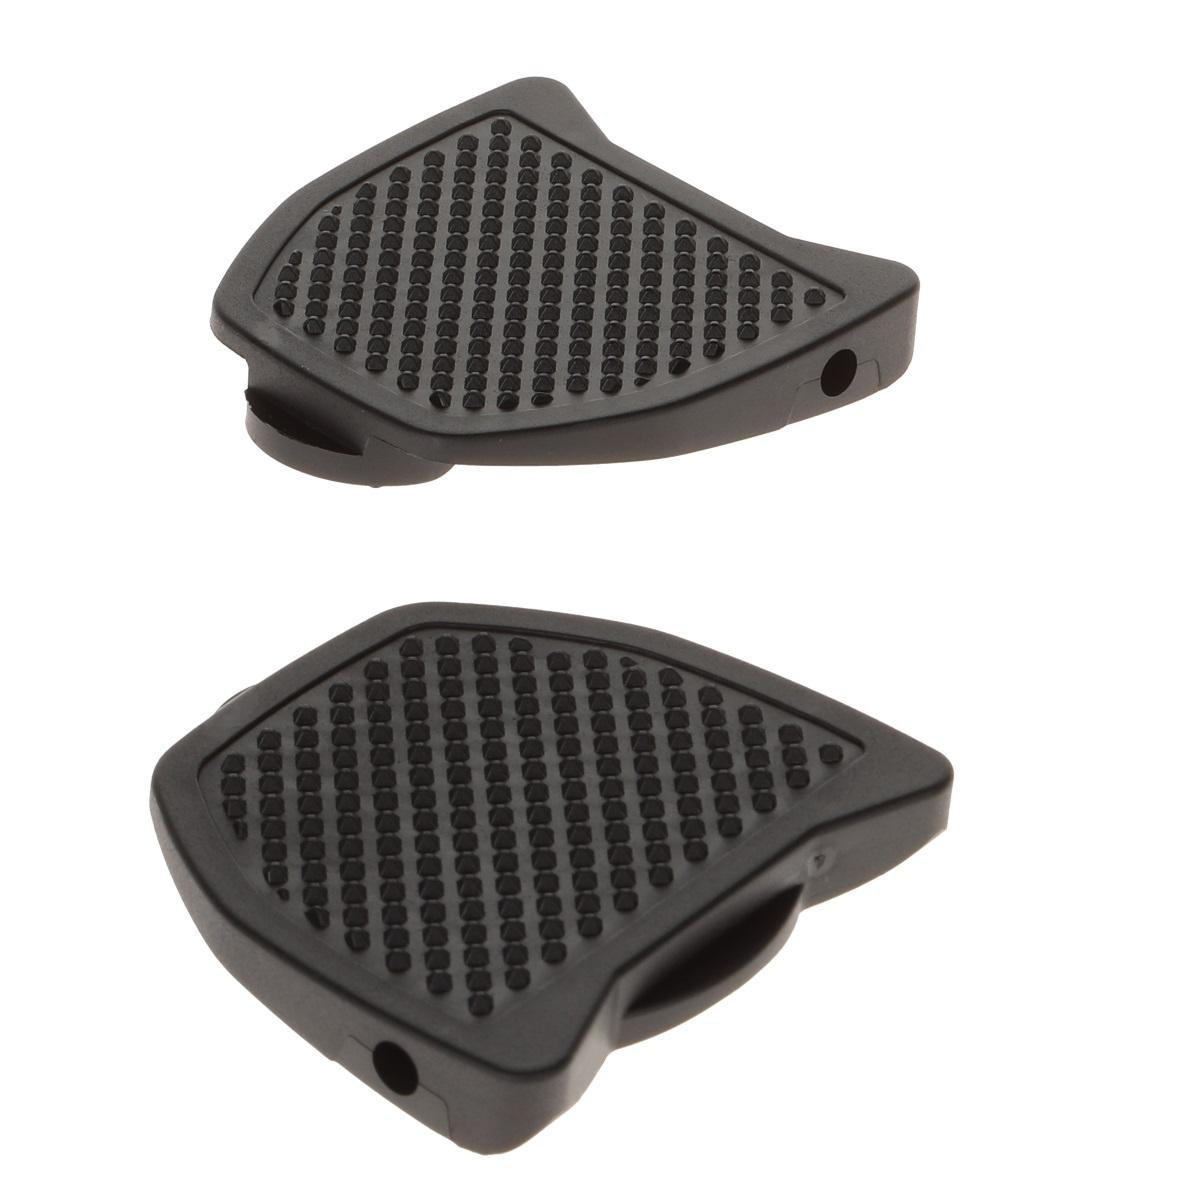 Pedal Plate (Pedaal adapter) Shimano SPD-SL compatible